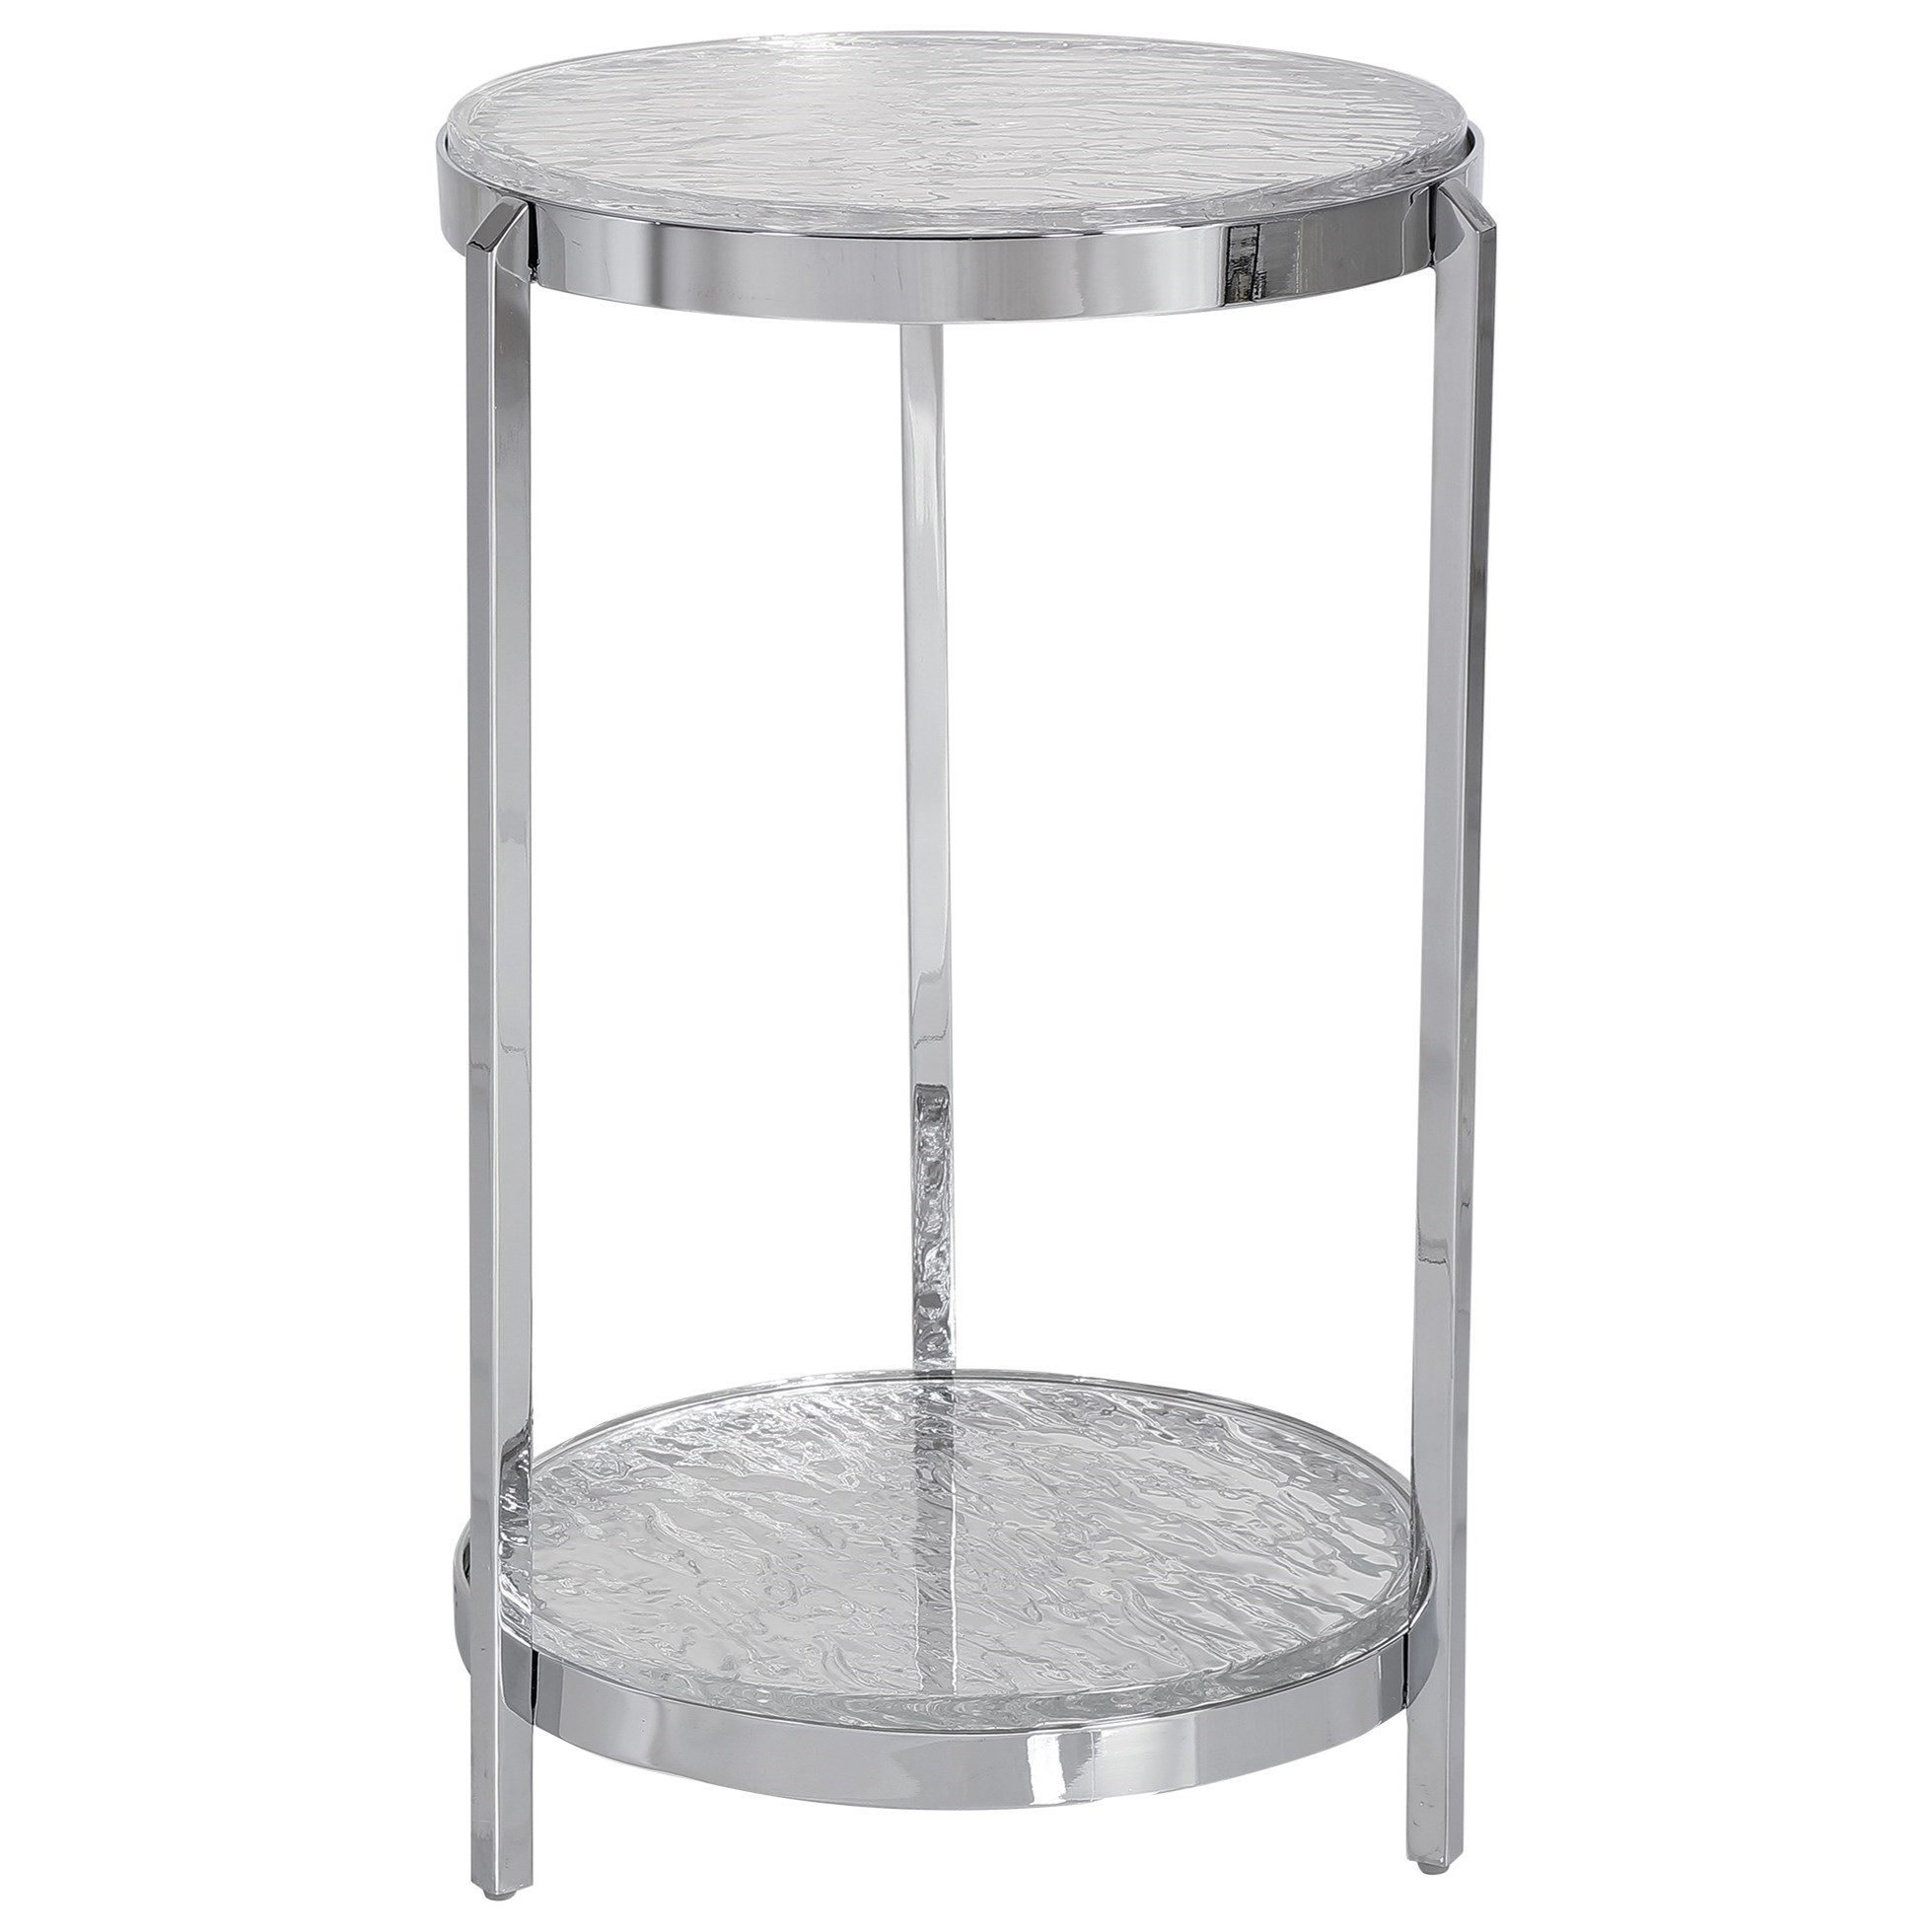 Accent Furniture - Occasional Tables Clarence Textured Glass Accent Table by Uttermost at Suburban Furniture